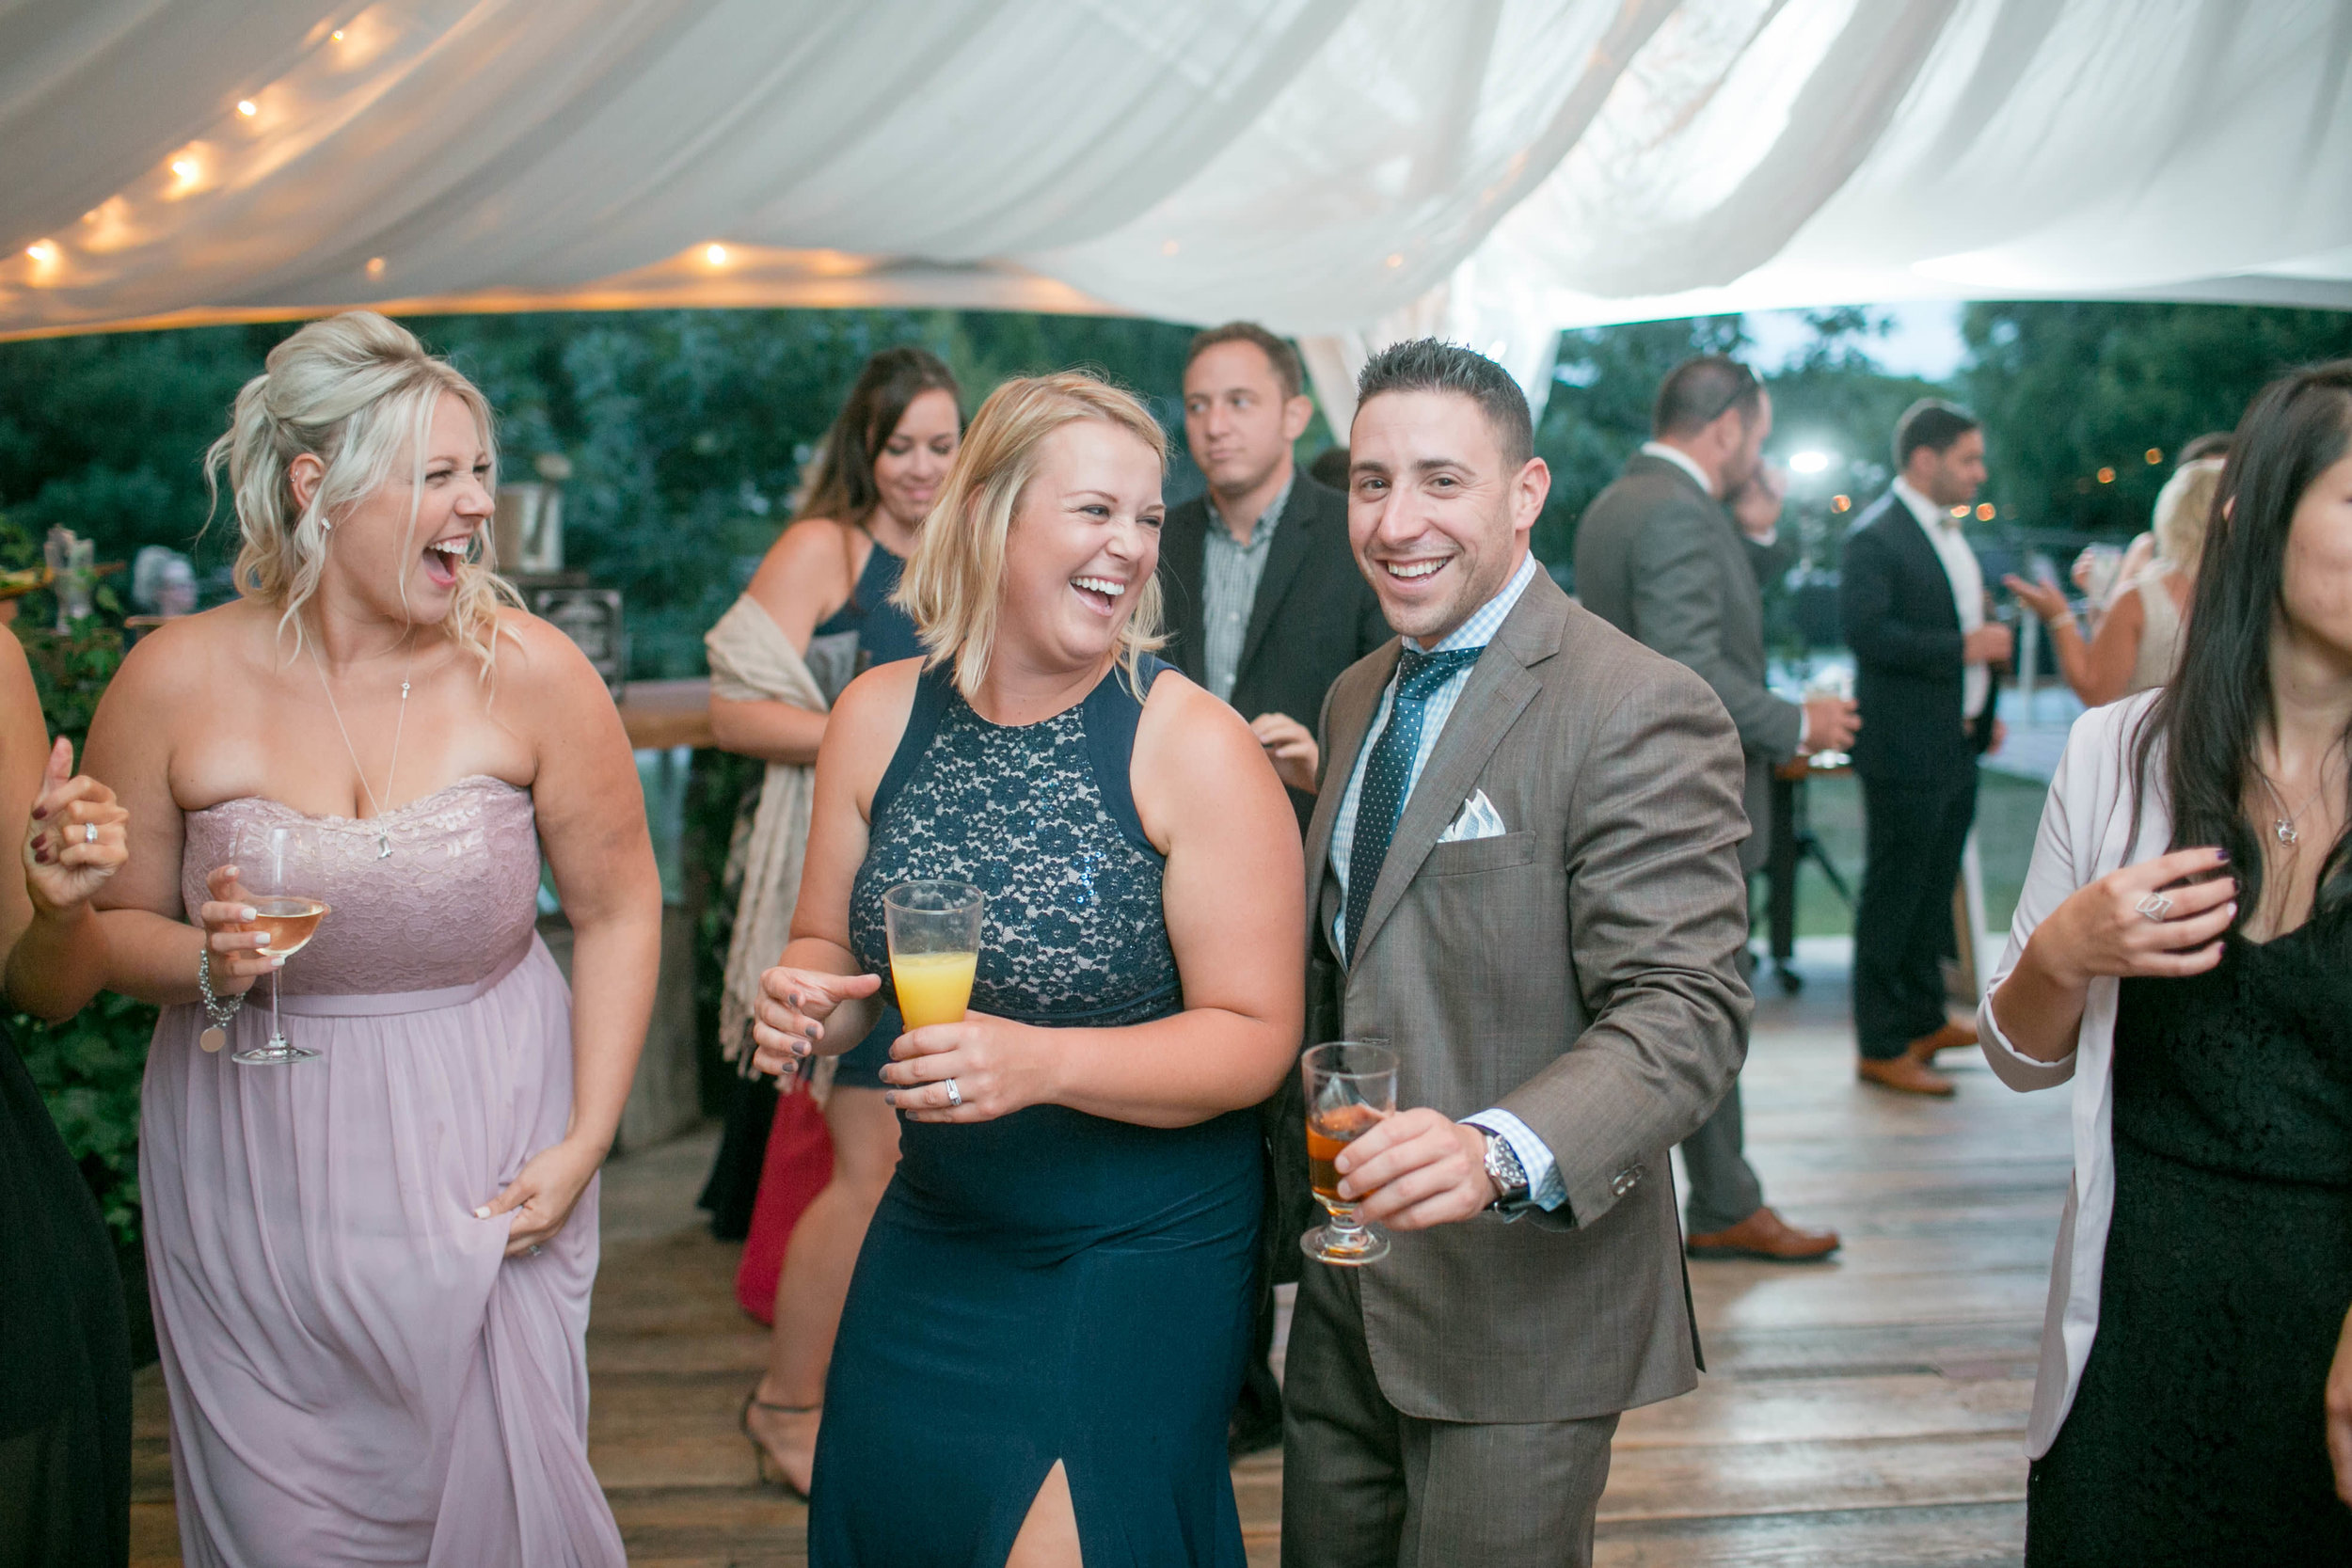 Ashley___Zac___Daniel_Ricci_Weddings___High_Res._Finals_598.jpg